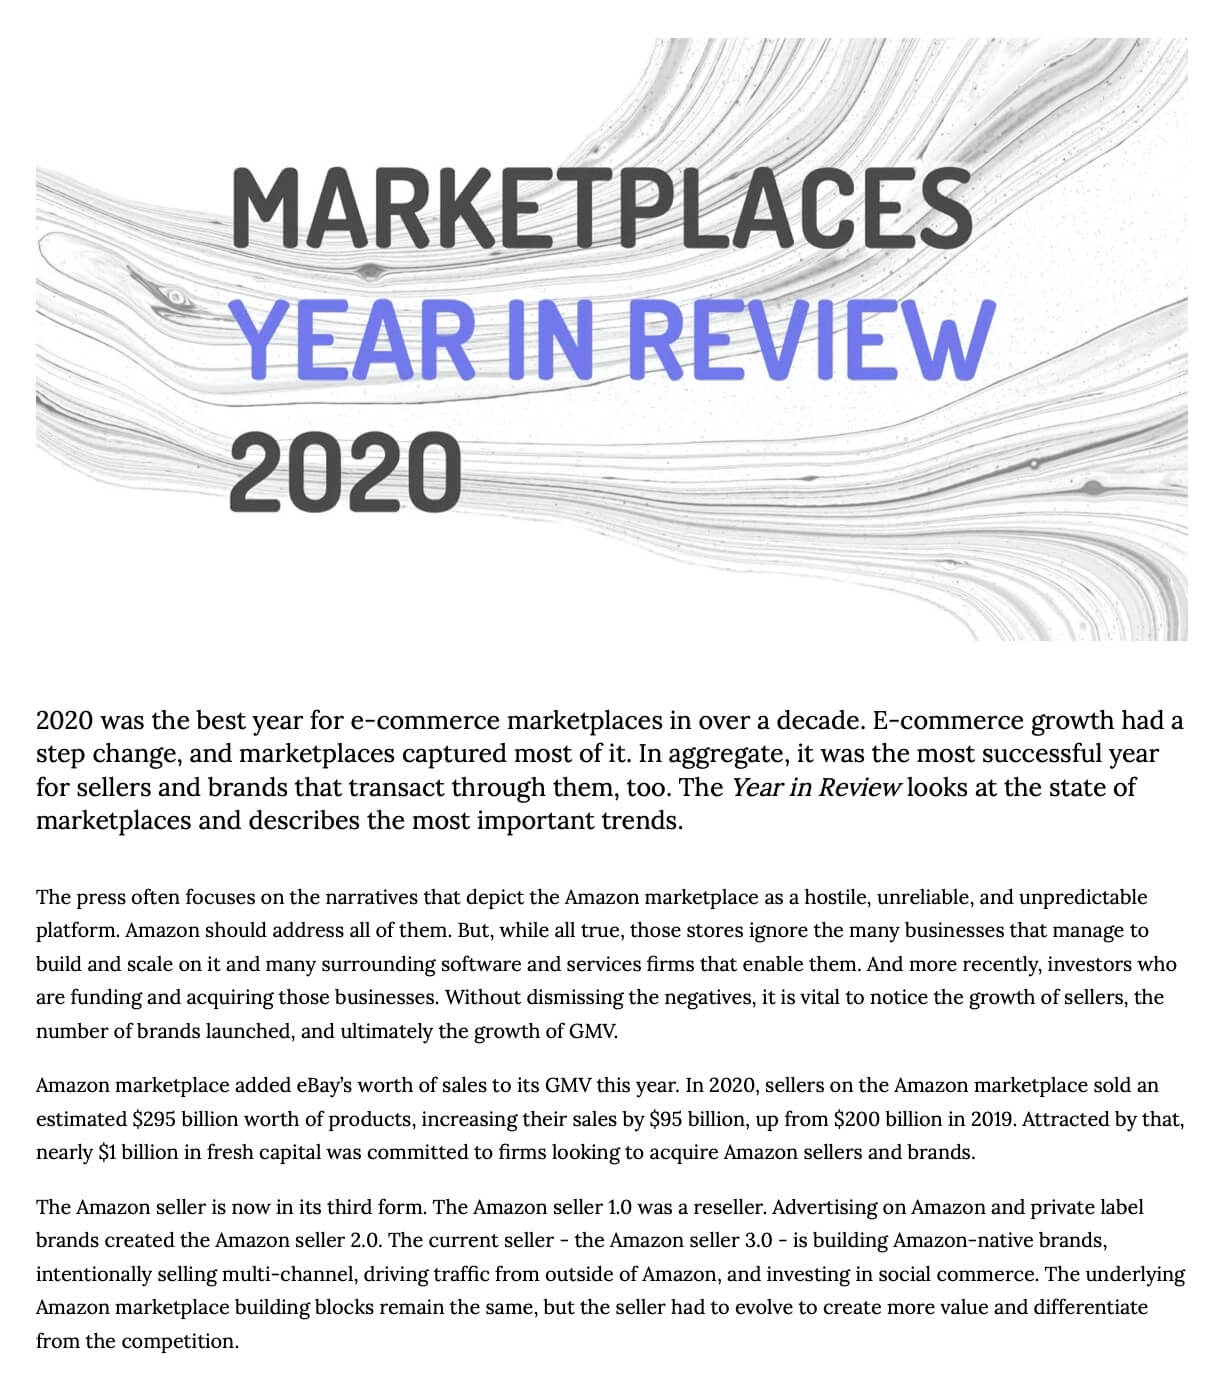 Marketplaces Year in Review 2019